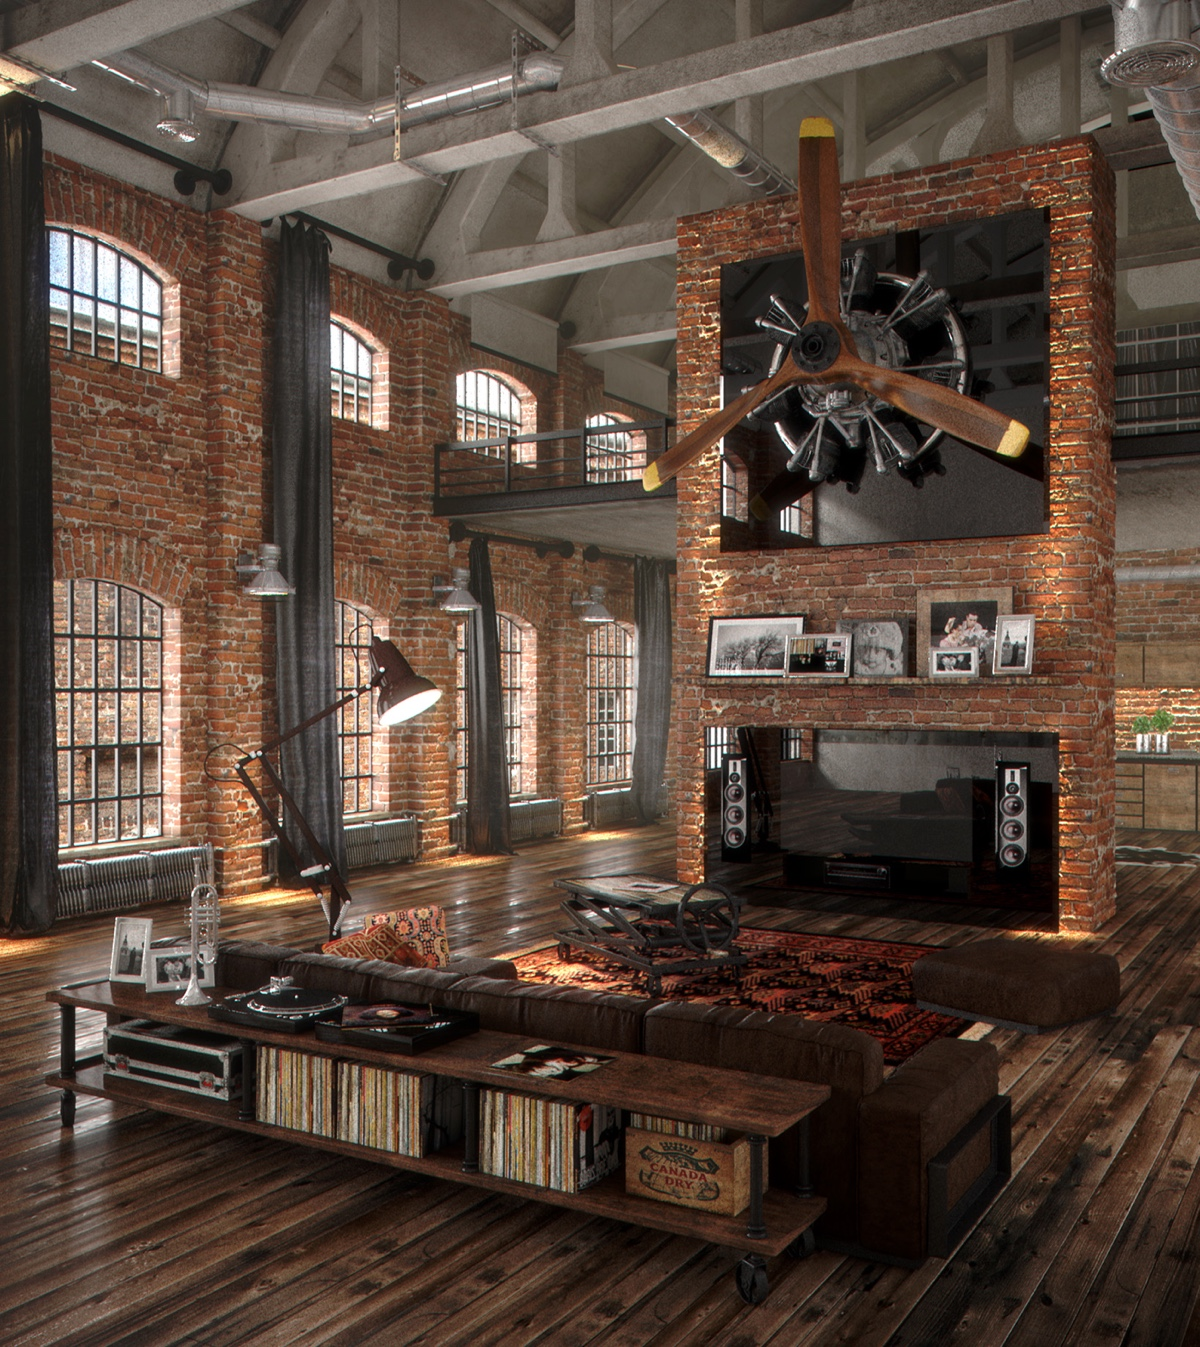 40 incredible lofts that push boundaries Vintage home architecture